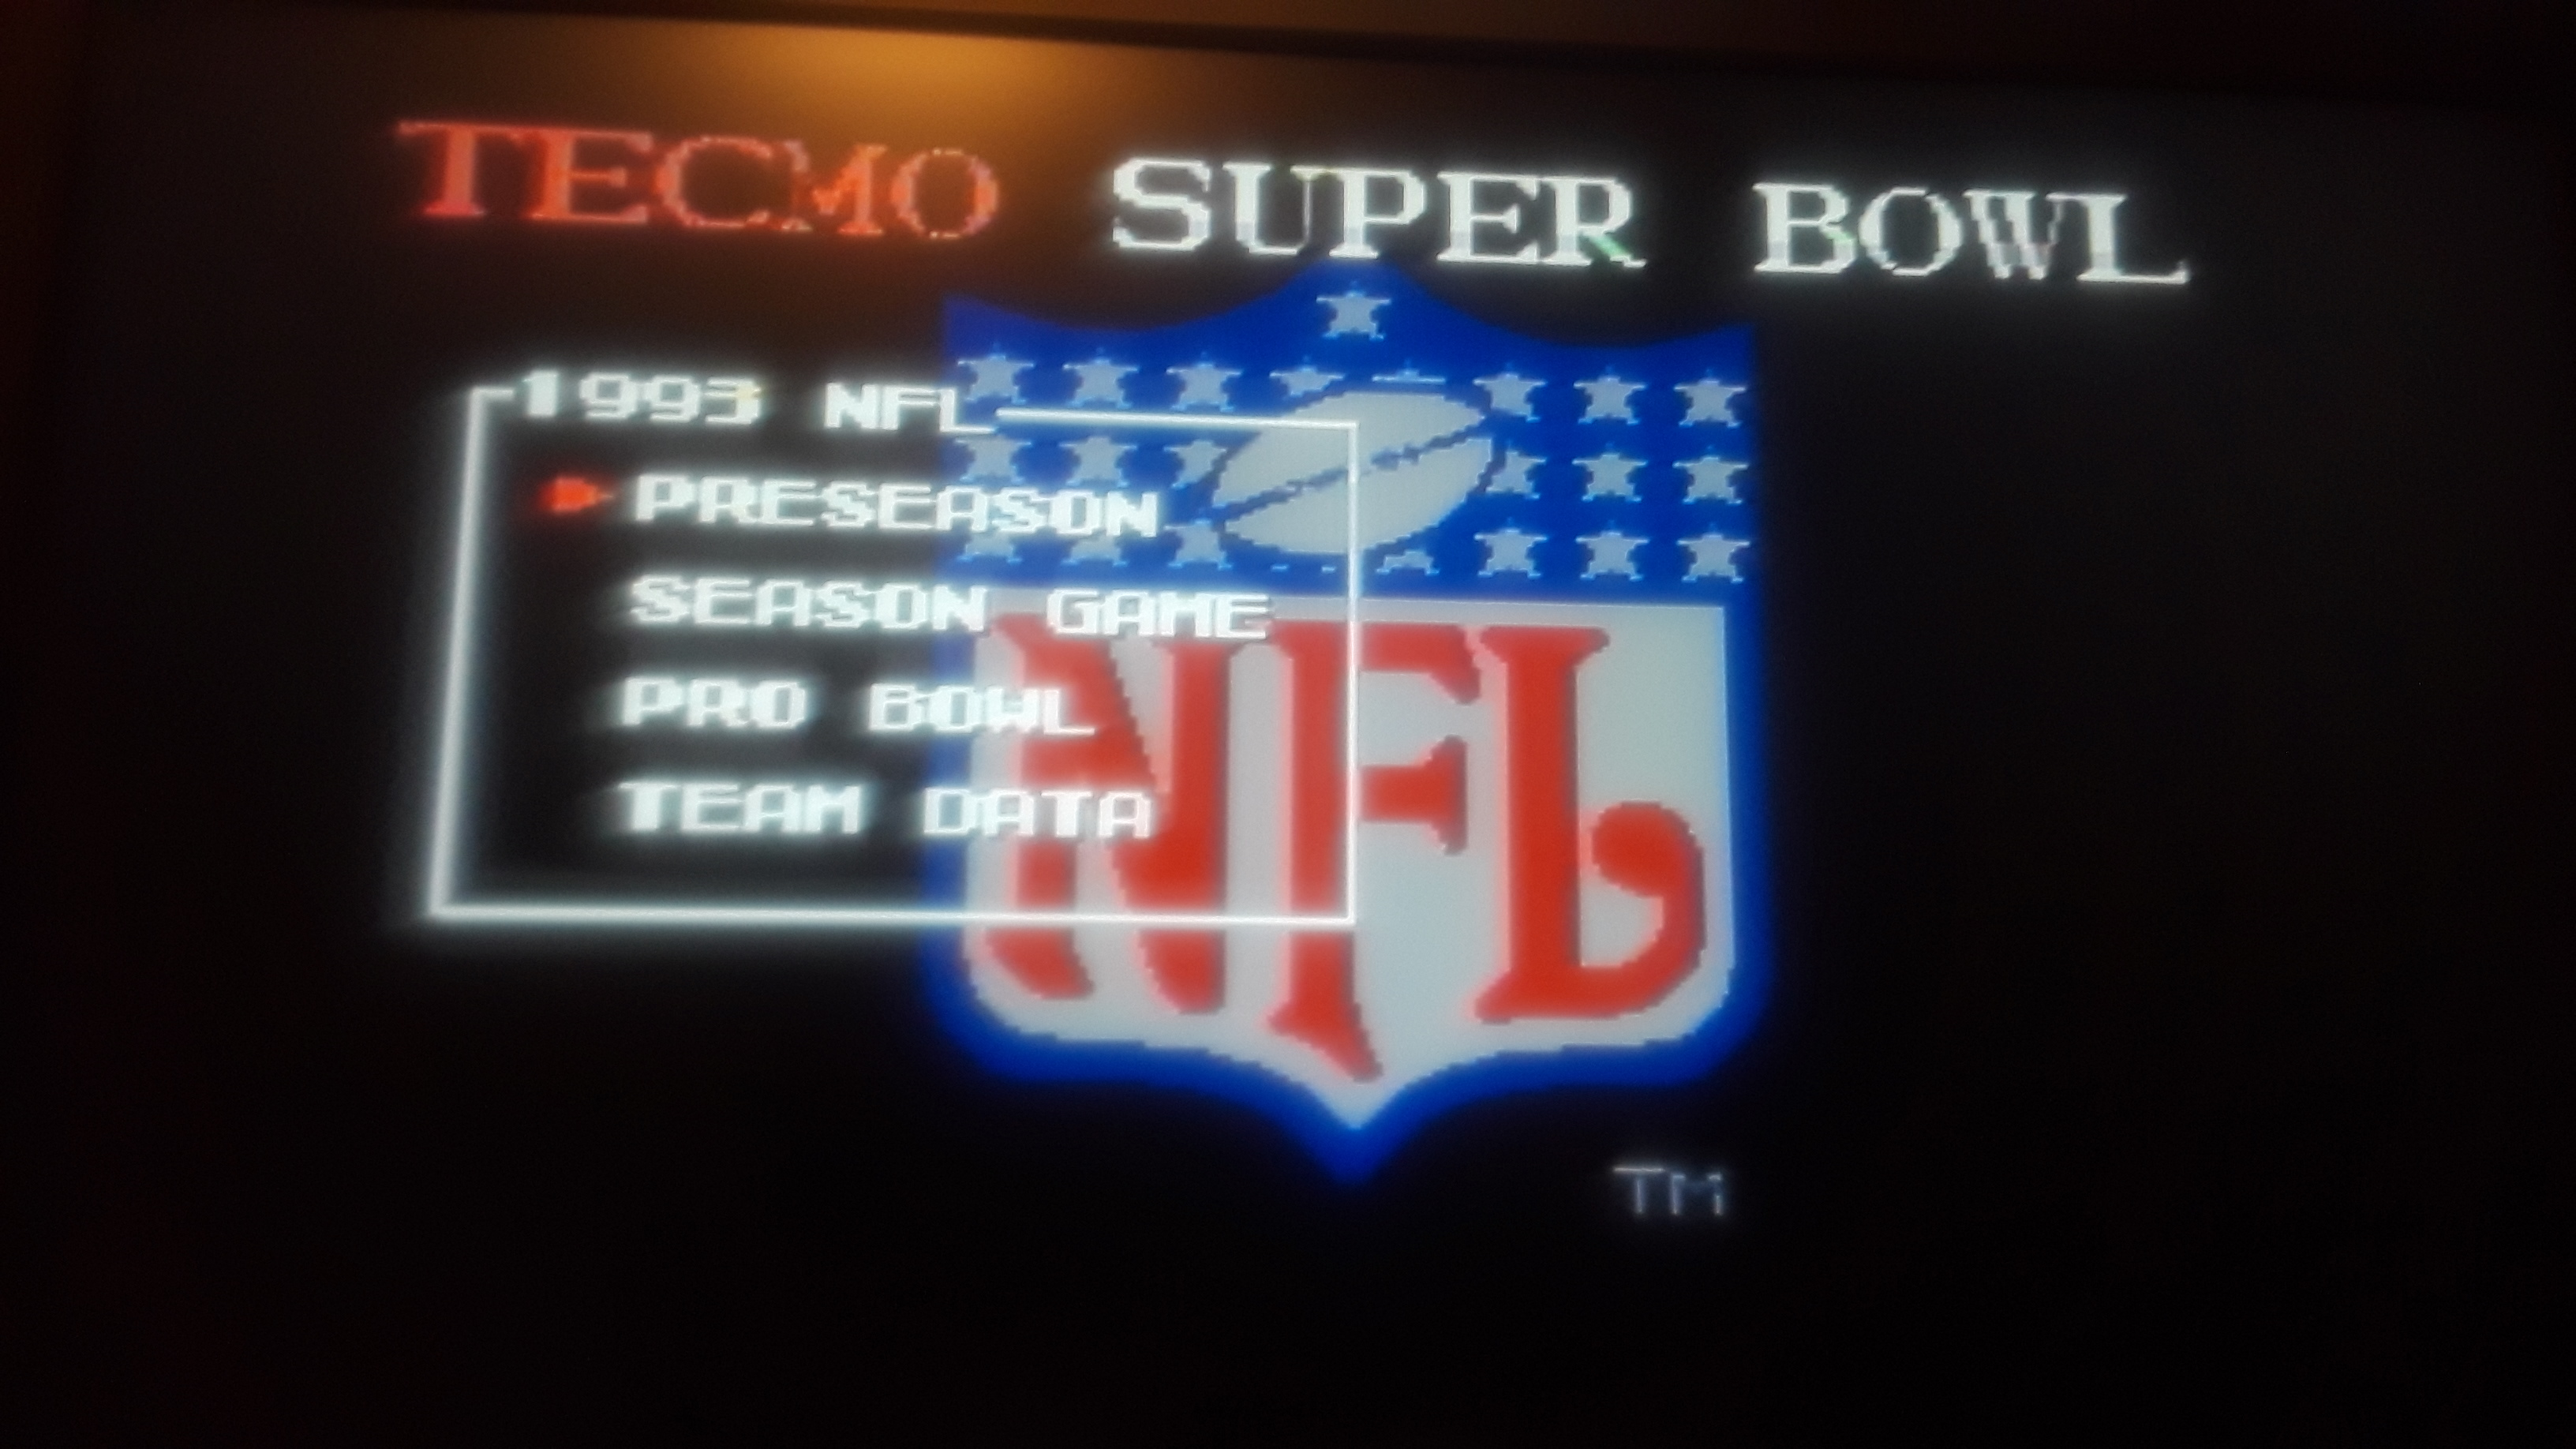 Tecmo Super Bowl [Most Receptions] [Preseason Game] 15 points